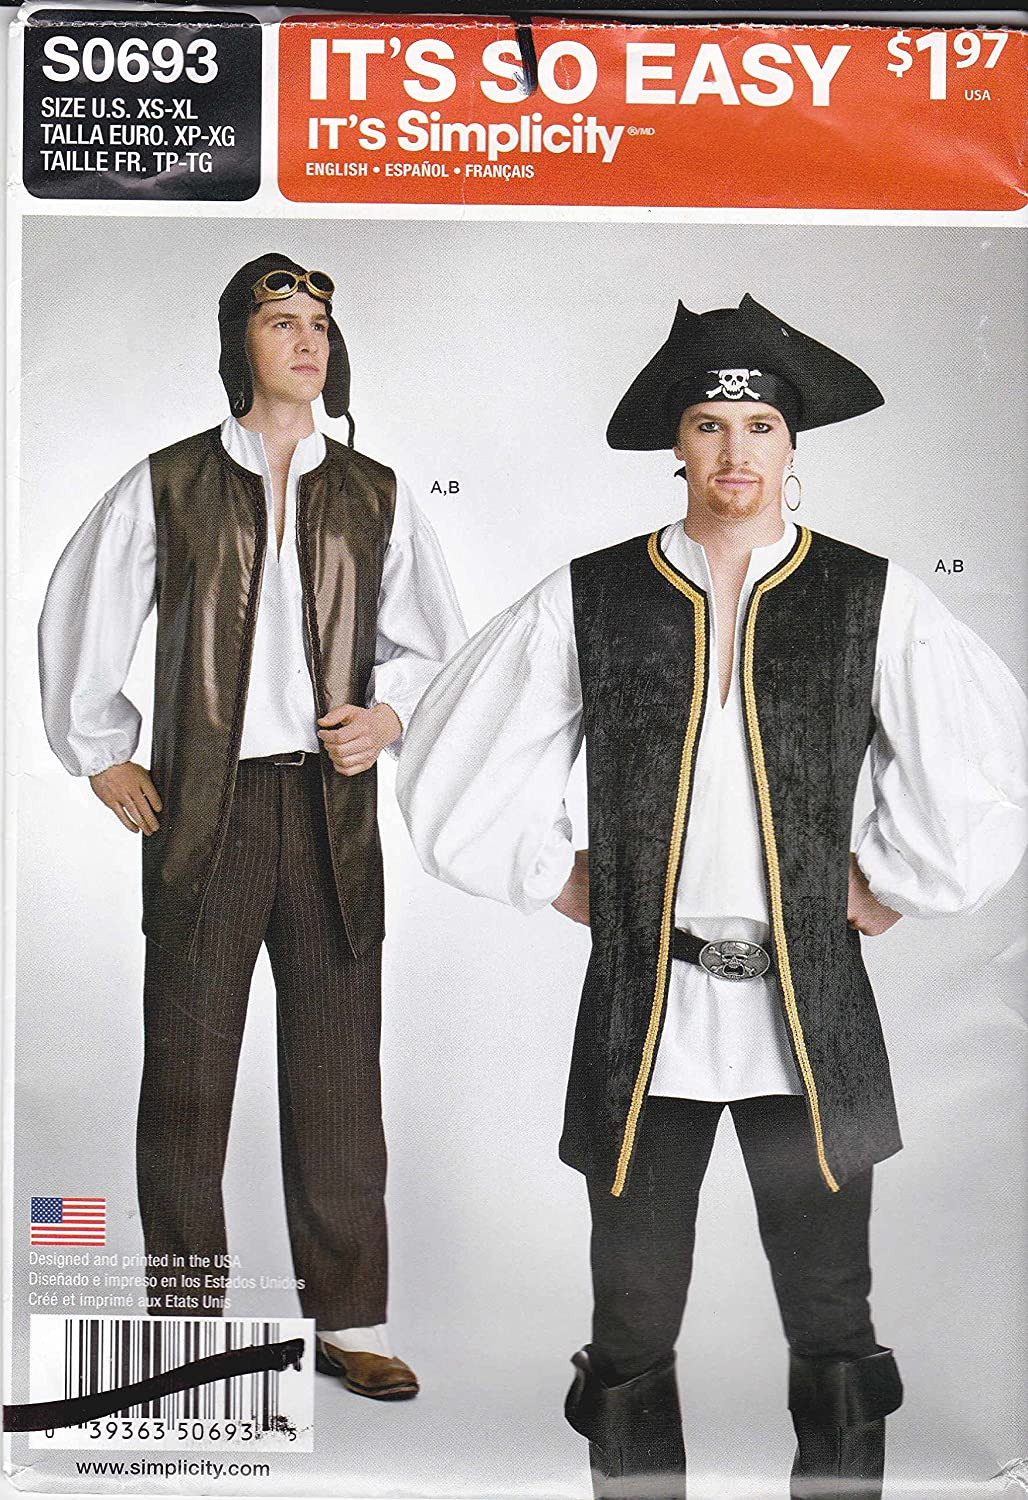 Simplicity Sewing Pattern S0693 0693 Mens Sizes XS-XL Easy Puffy Pirate Shirt Vest Costume Amazon.ca Home u0026 Kitchen  sc 1 st  Amazon.ca & Simplicity Sewing Pattern S0693 0693 Mens Sizes XS-XL Easy Puffy ...